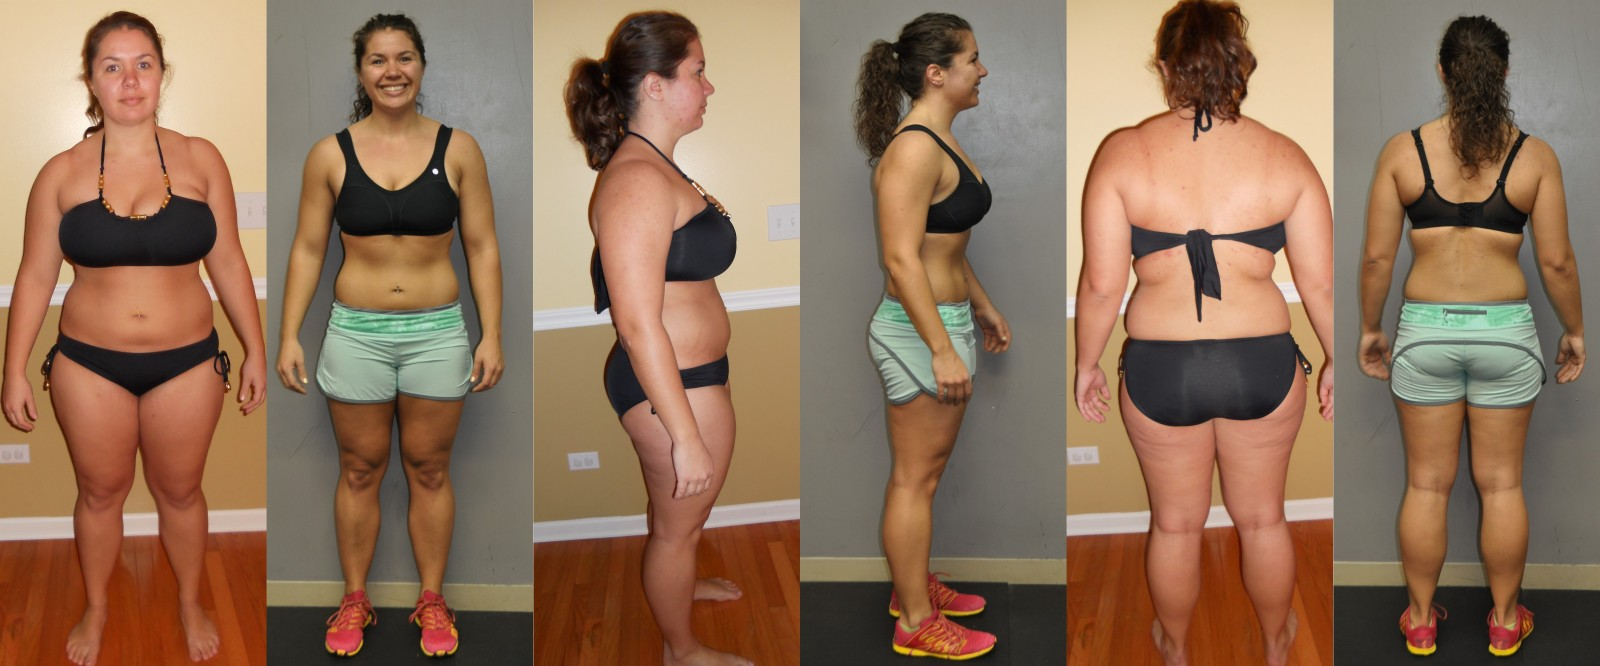 5 factors for fat loss crossfit flagstaff sammi before and after 1 diet ccuart Gallery